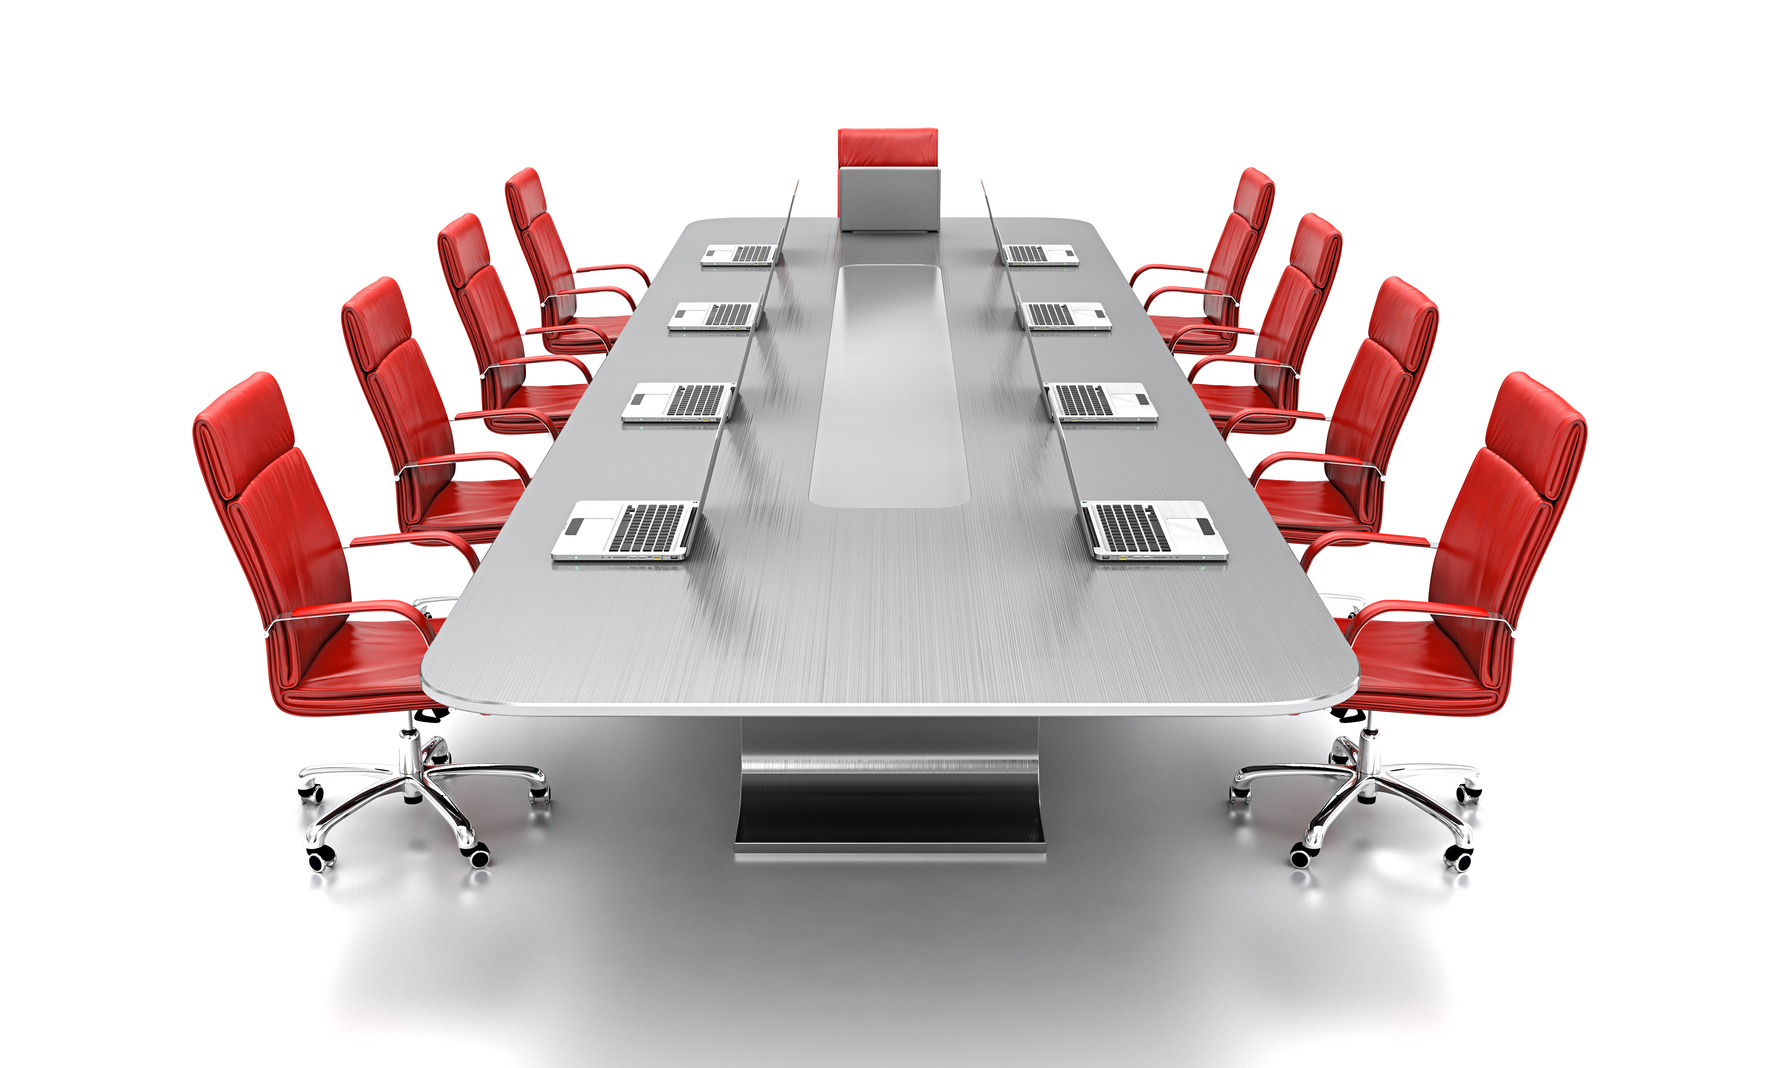 3D render of conference table with red leather chairs.